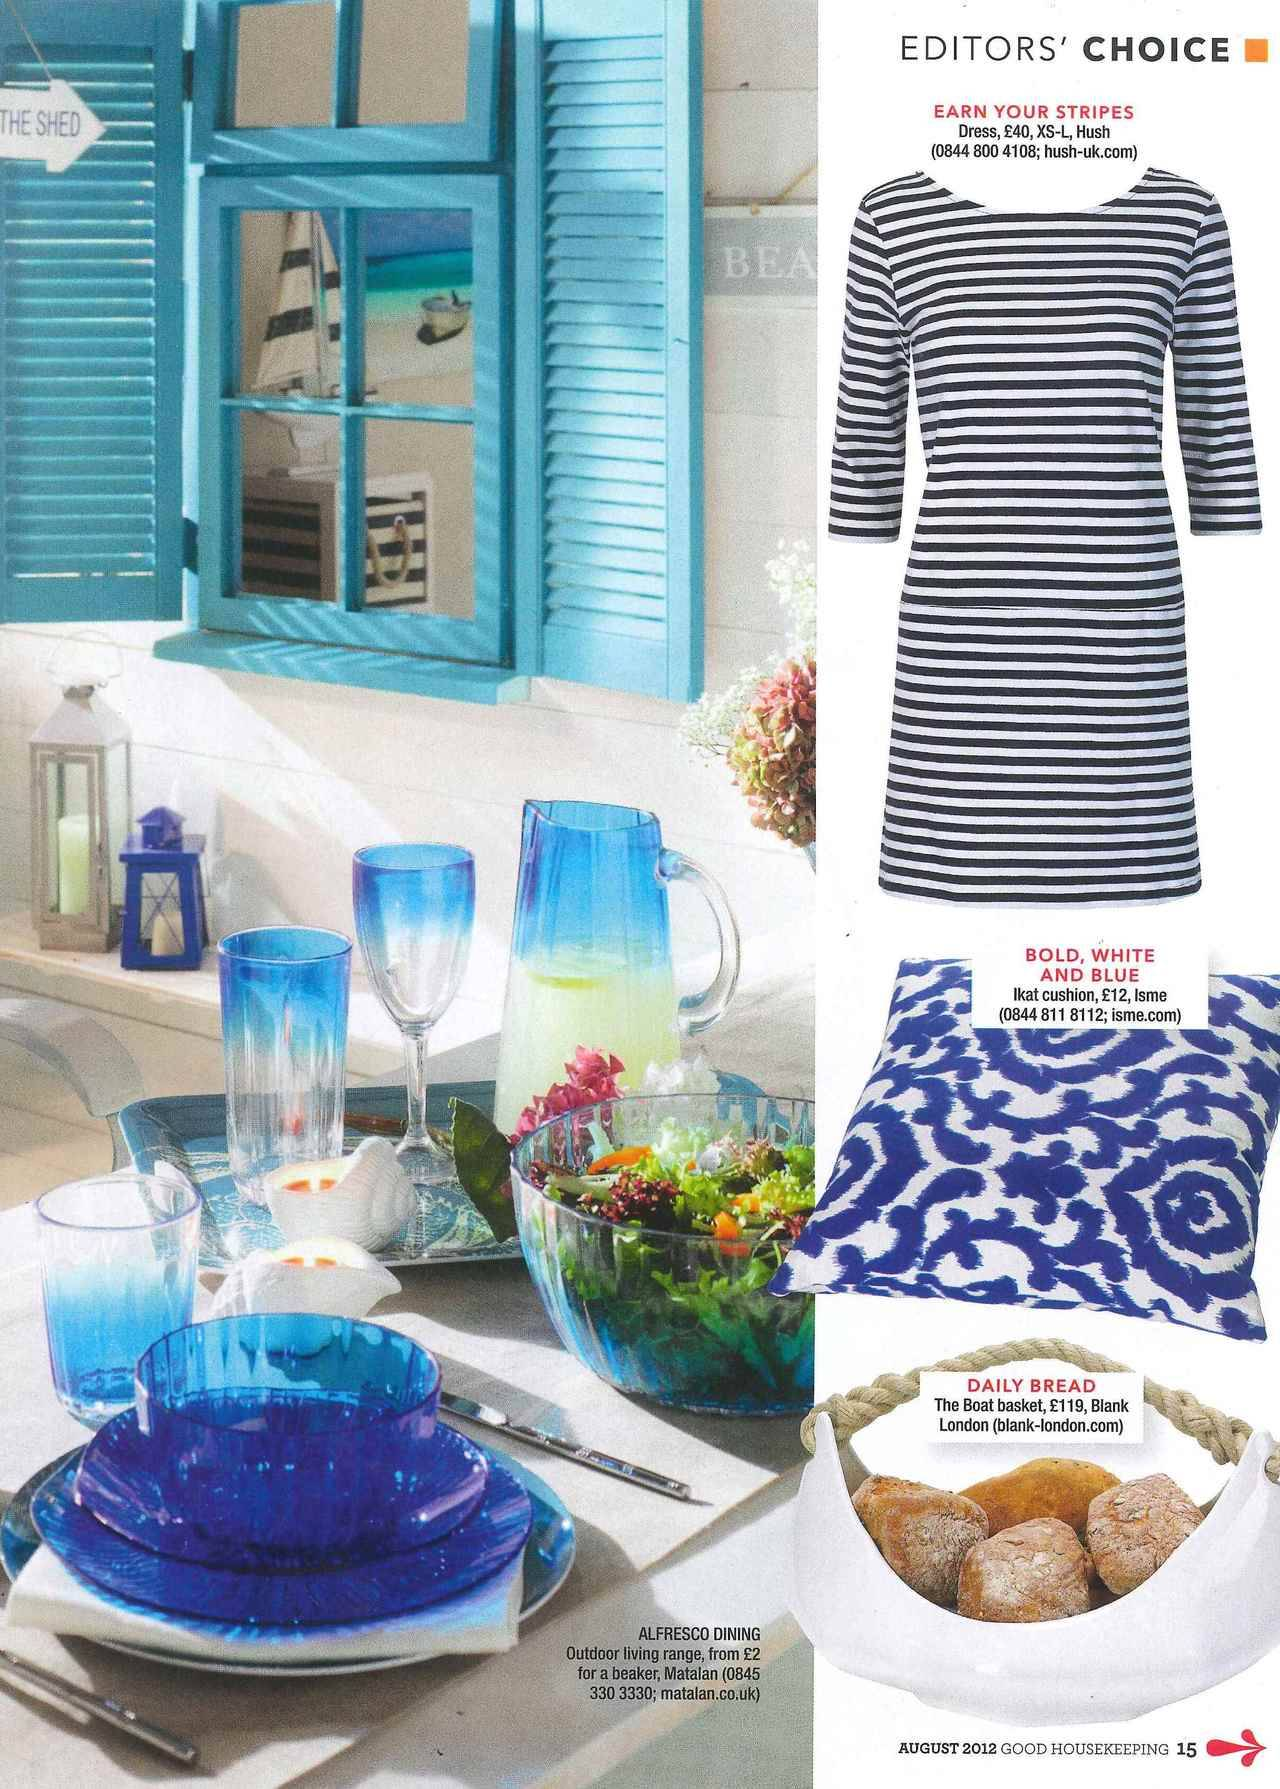 Blank London in Good Housekeeping